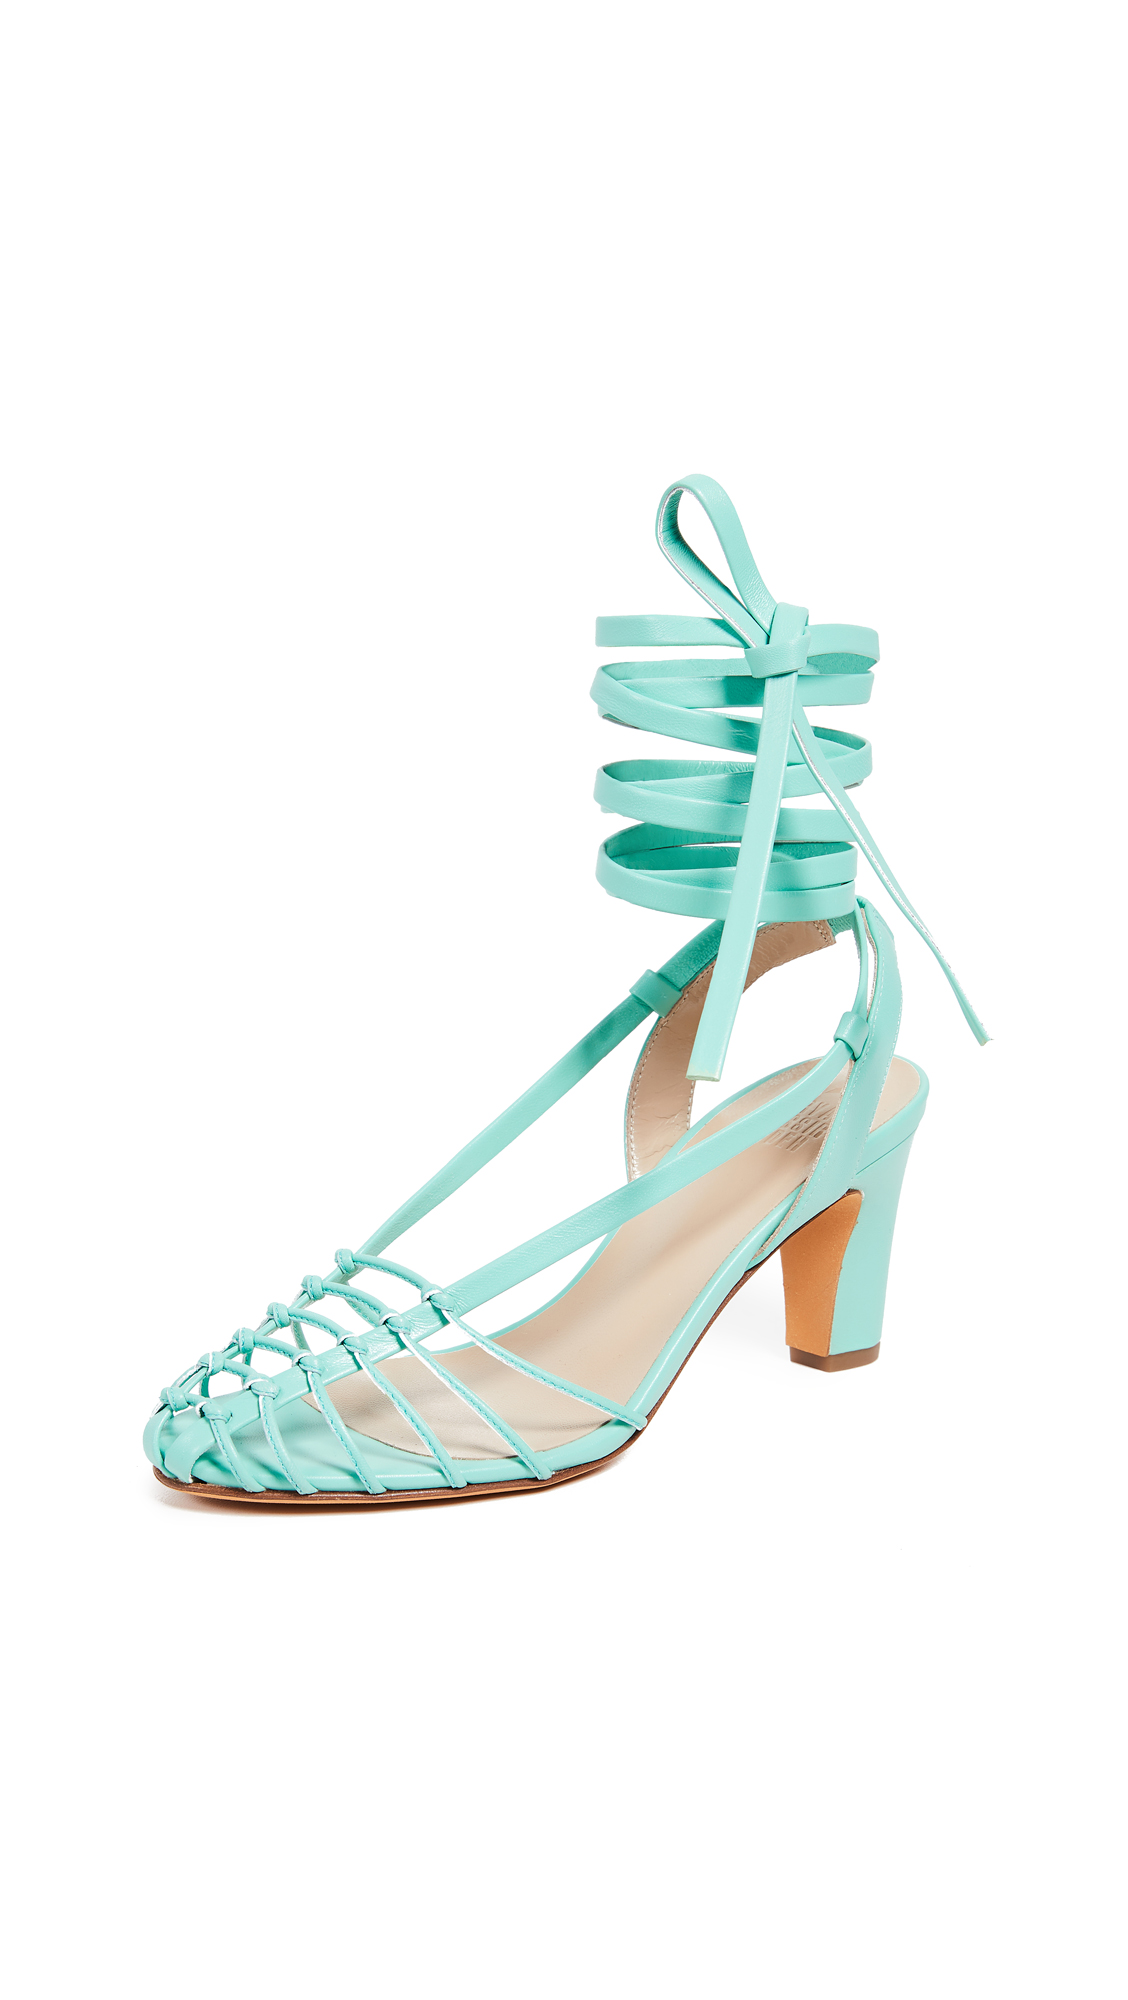 Maryam Nassir Zadeh Maribel Sandals - Seafoam